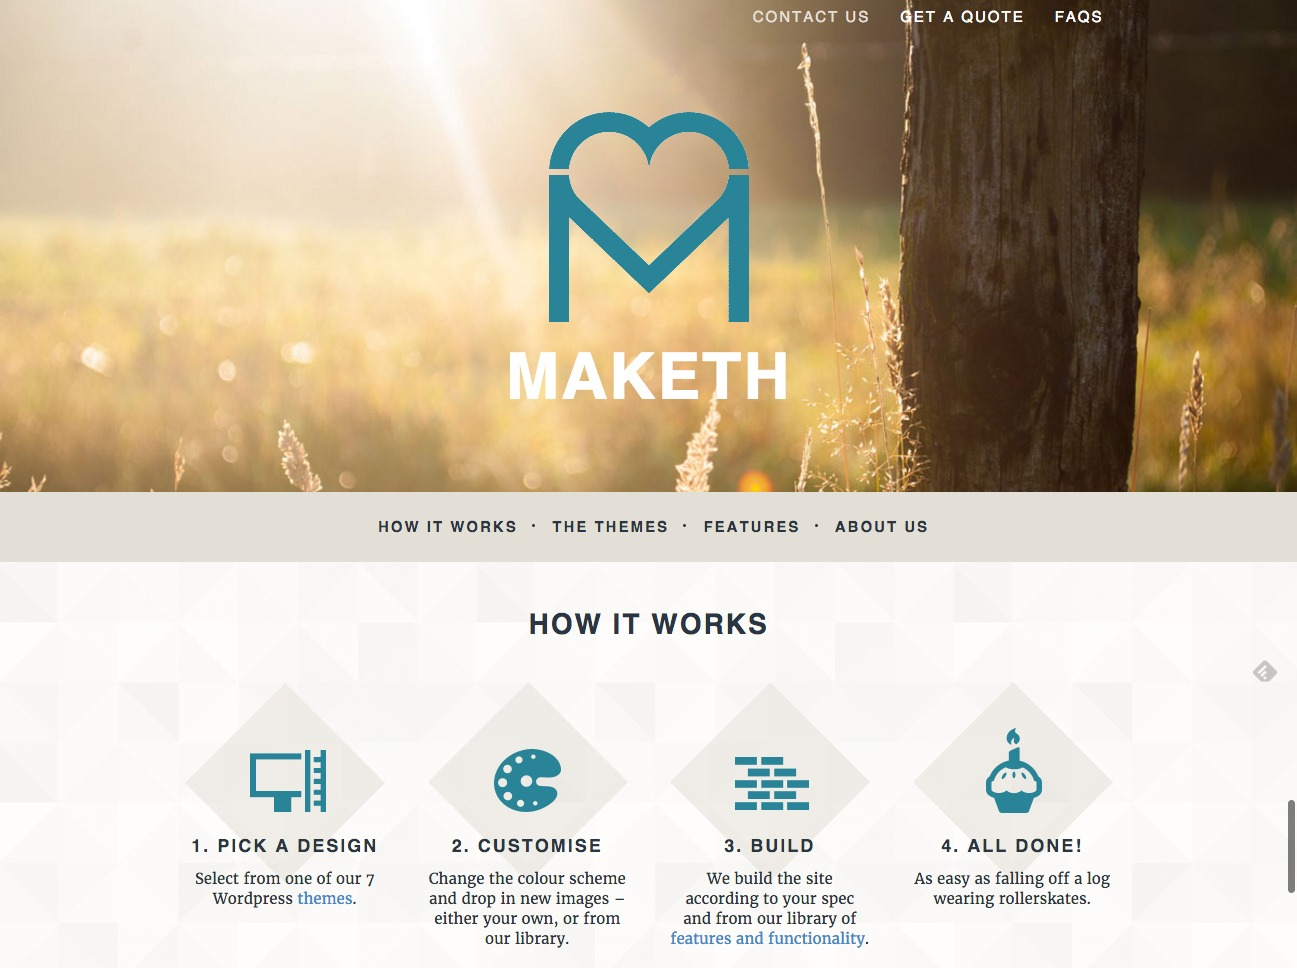 Maketh website